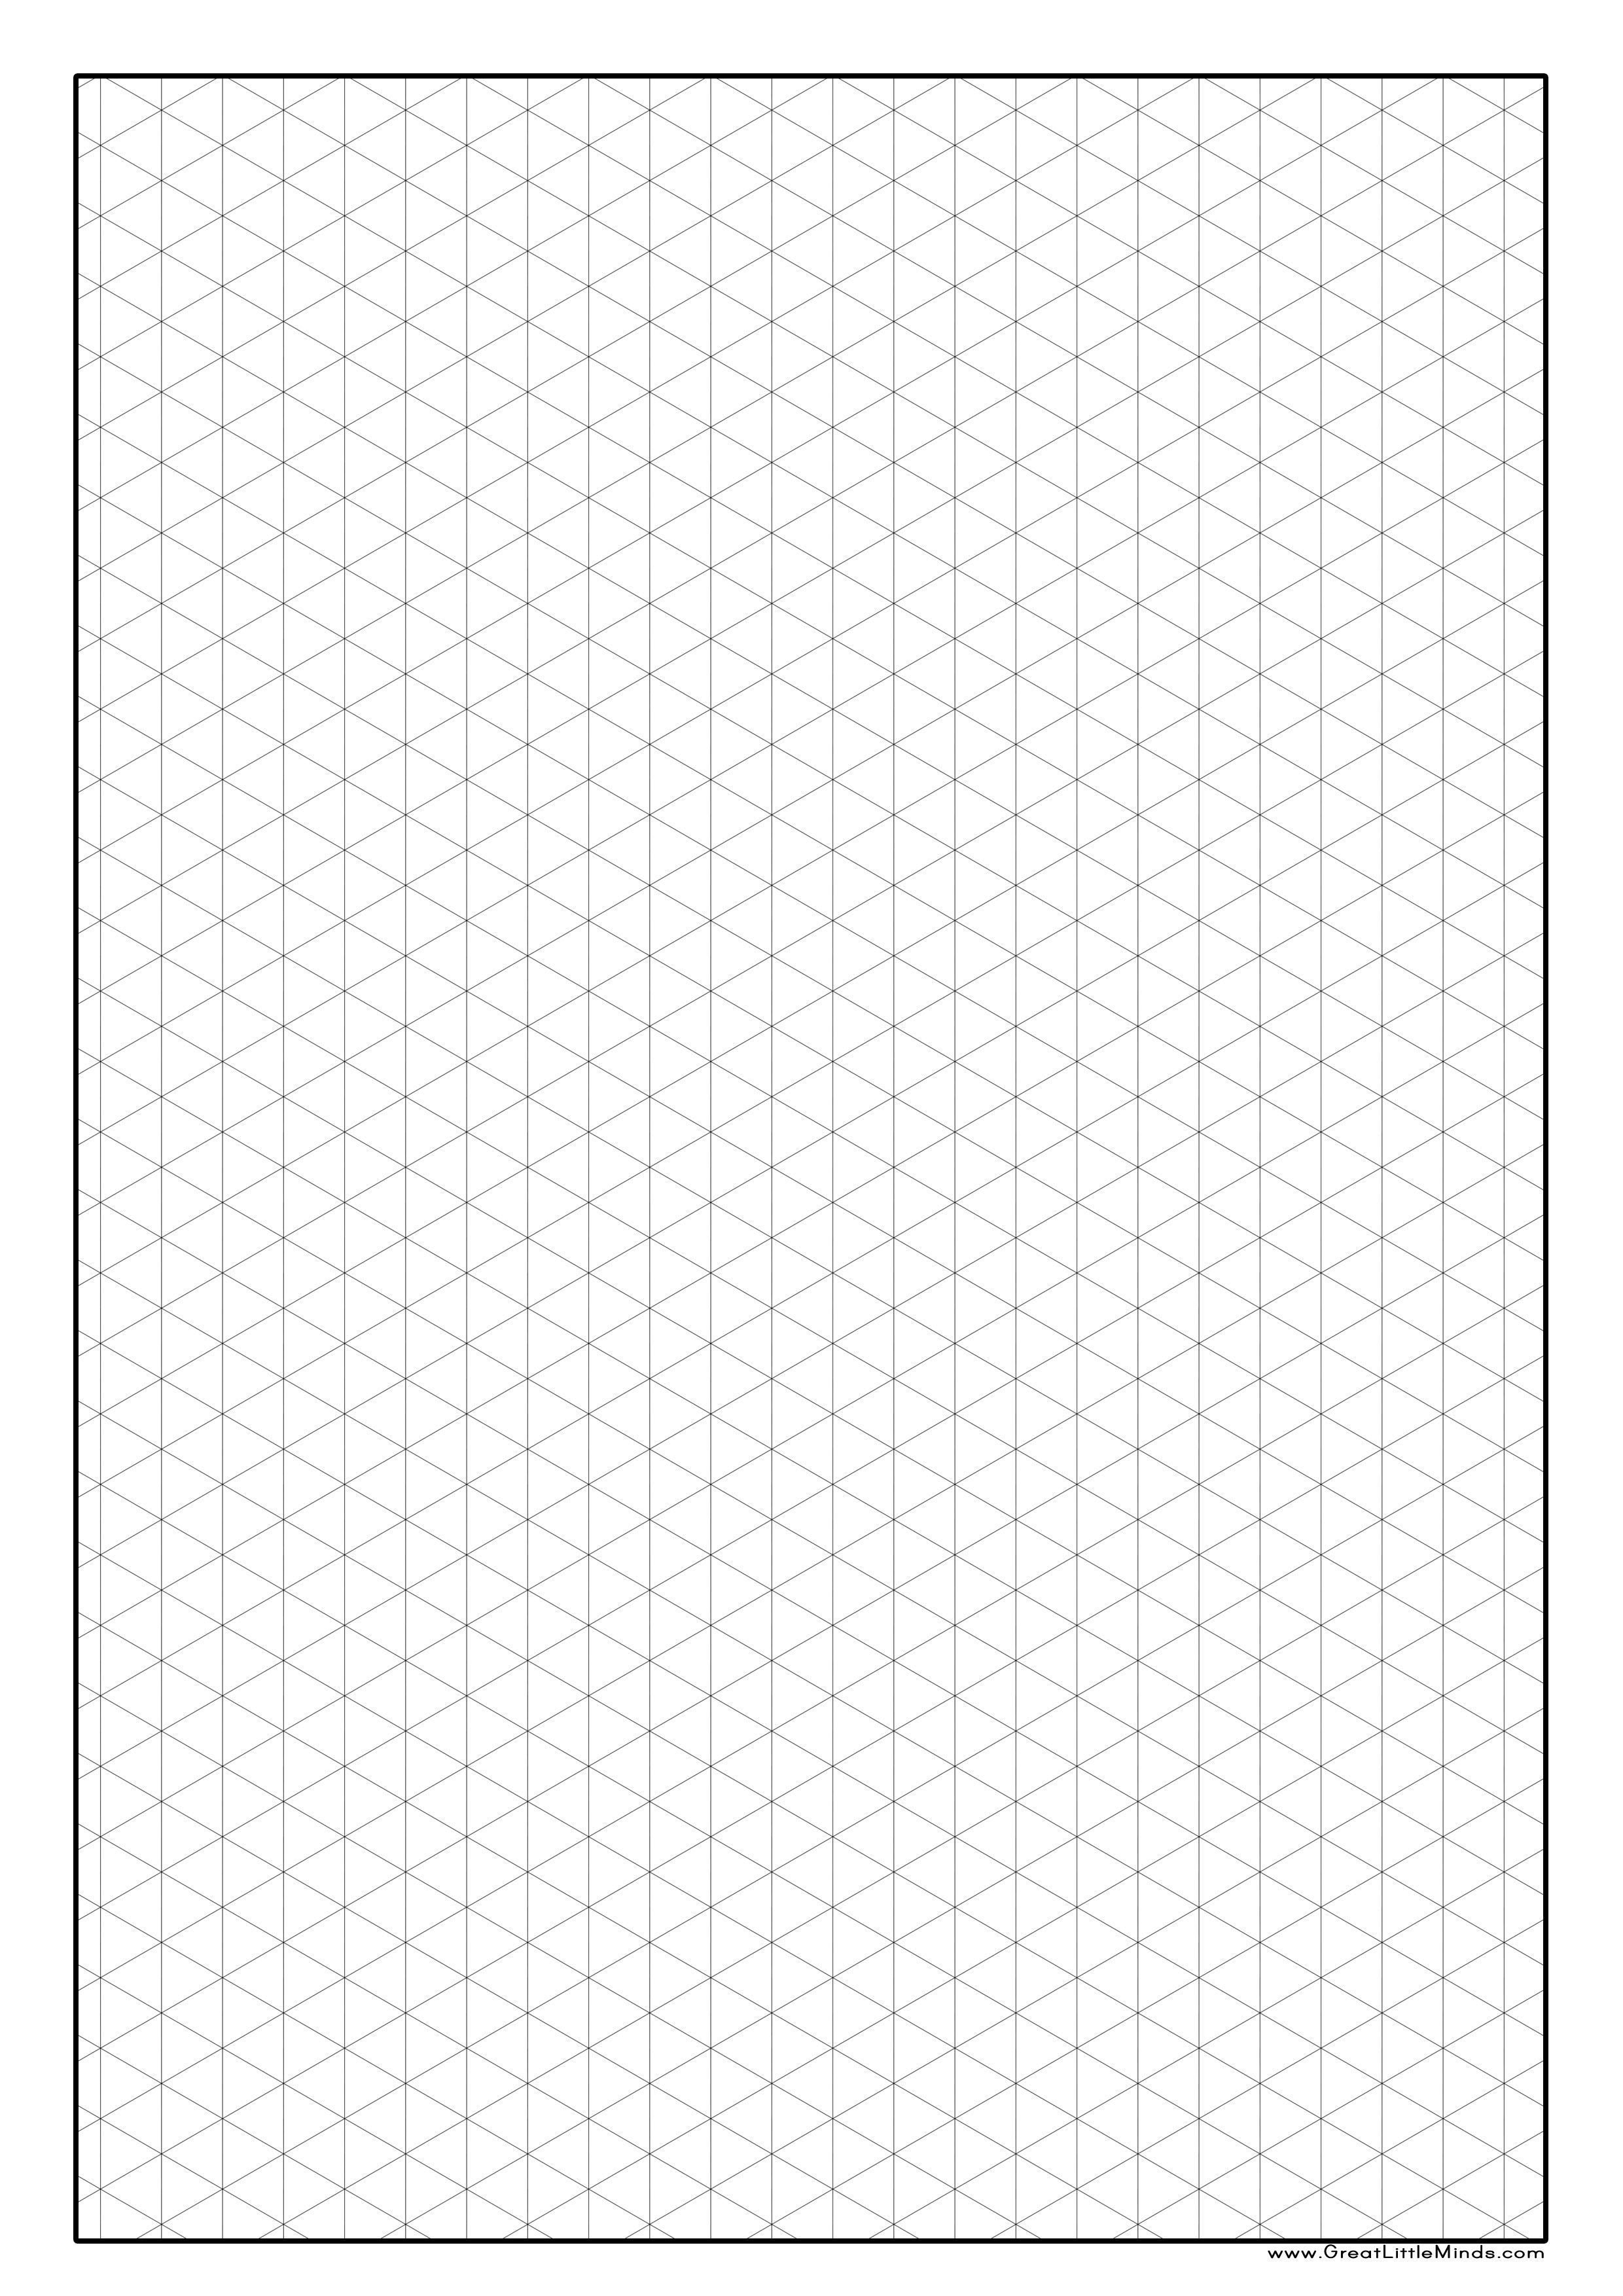 Printable isometric graph paper isometric paper